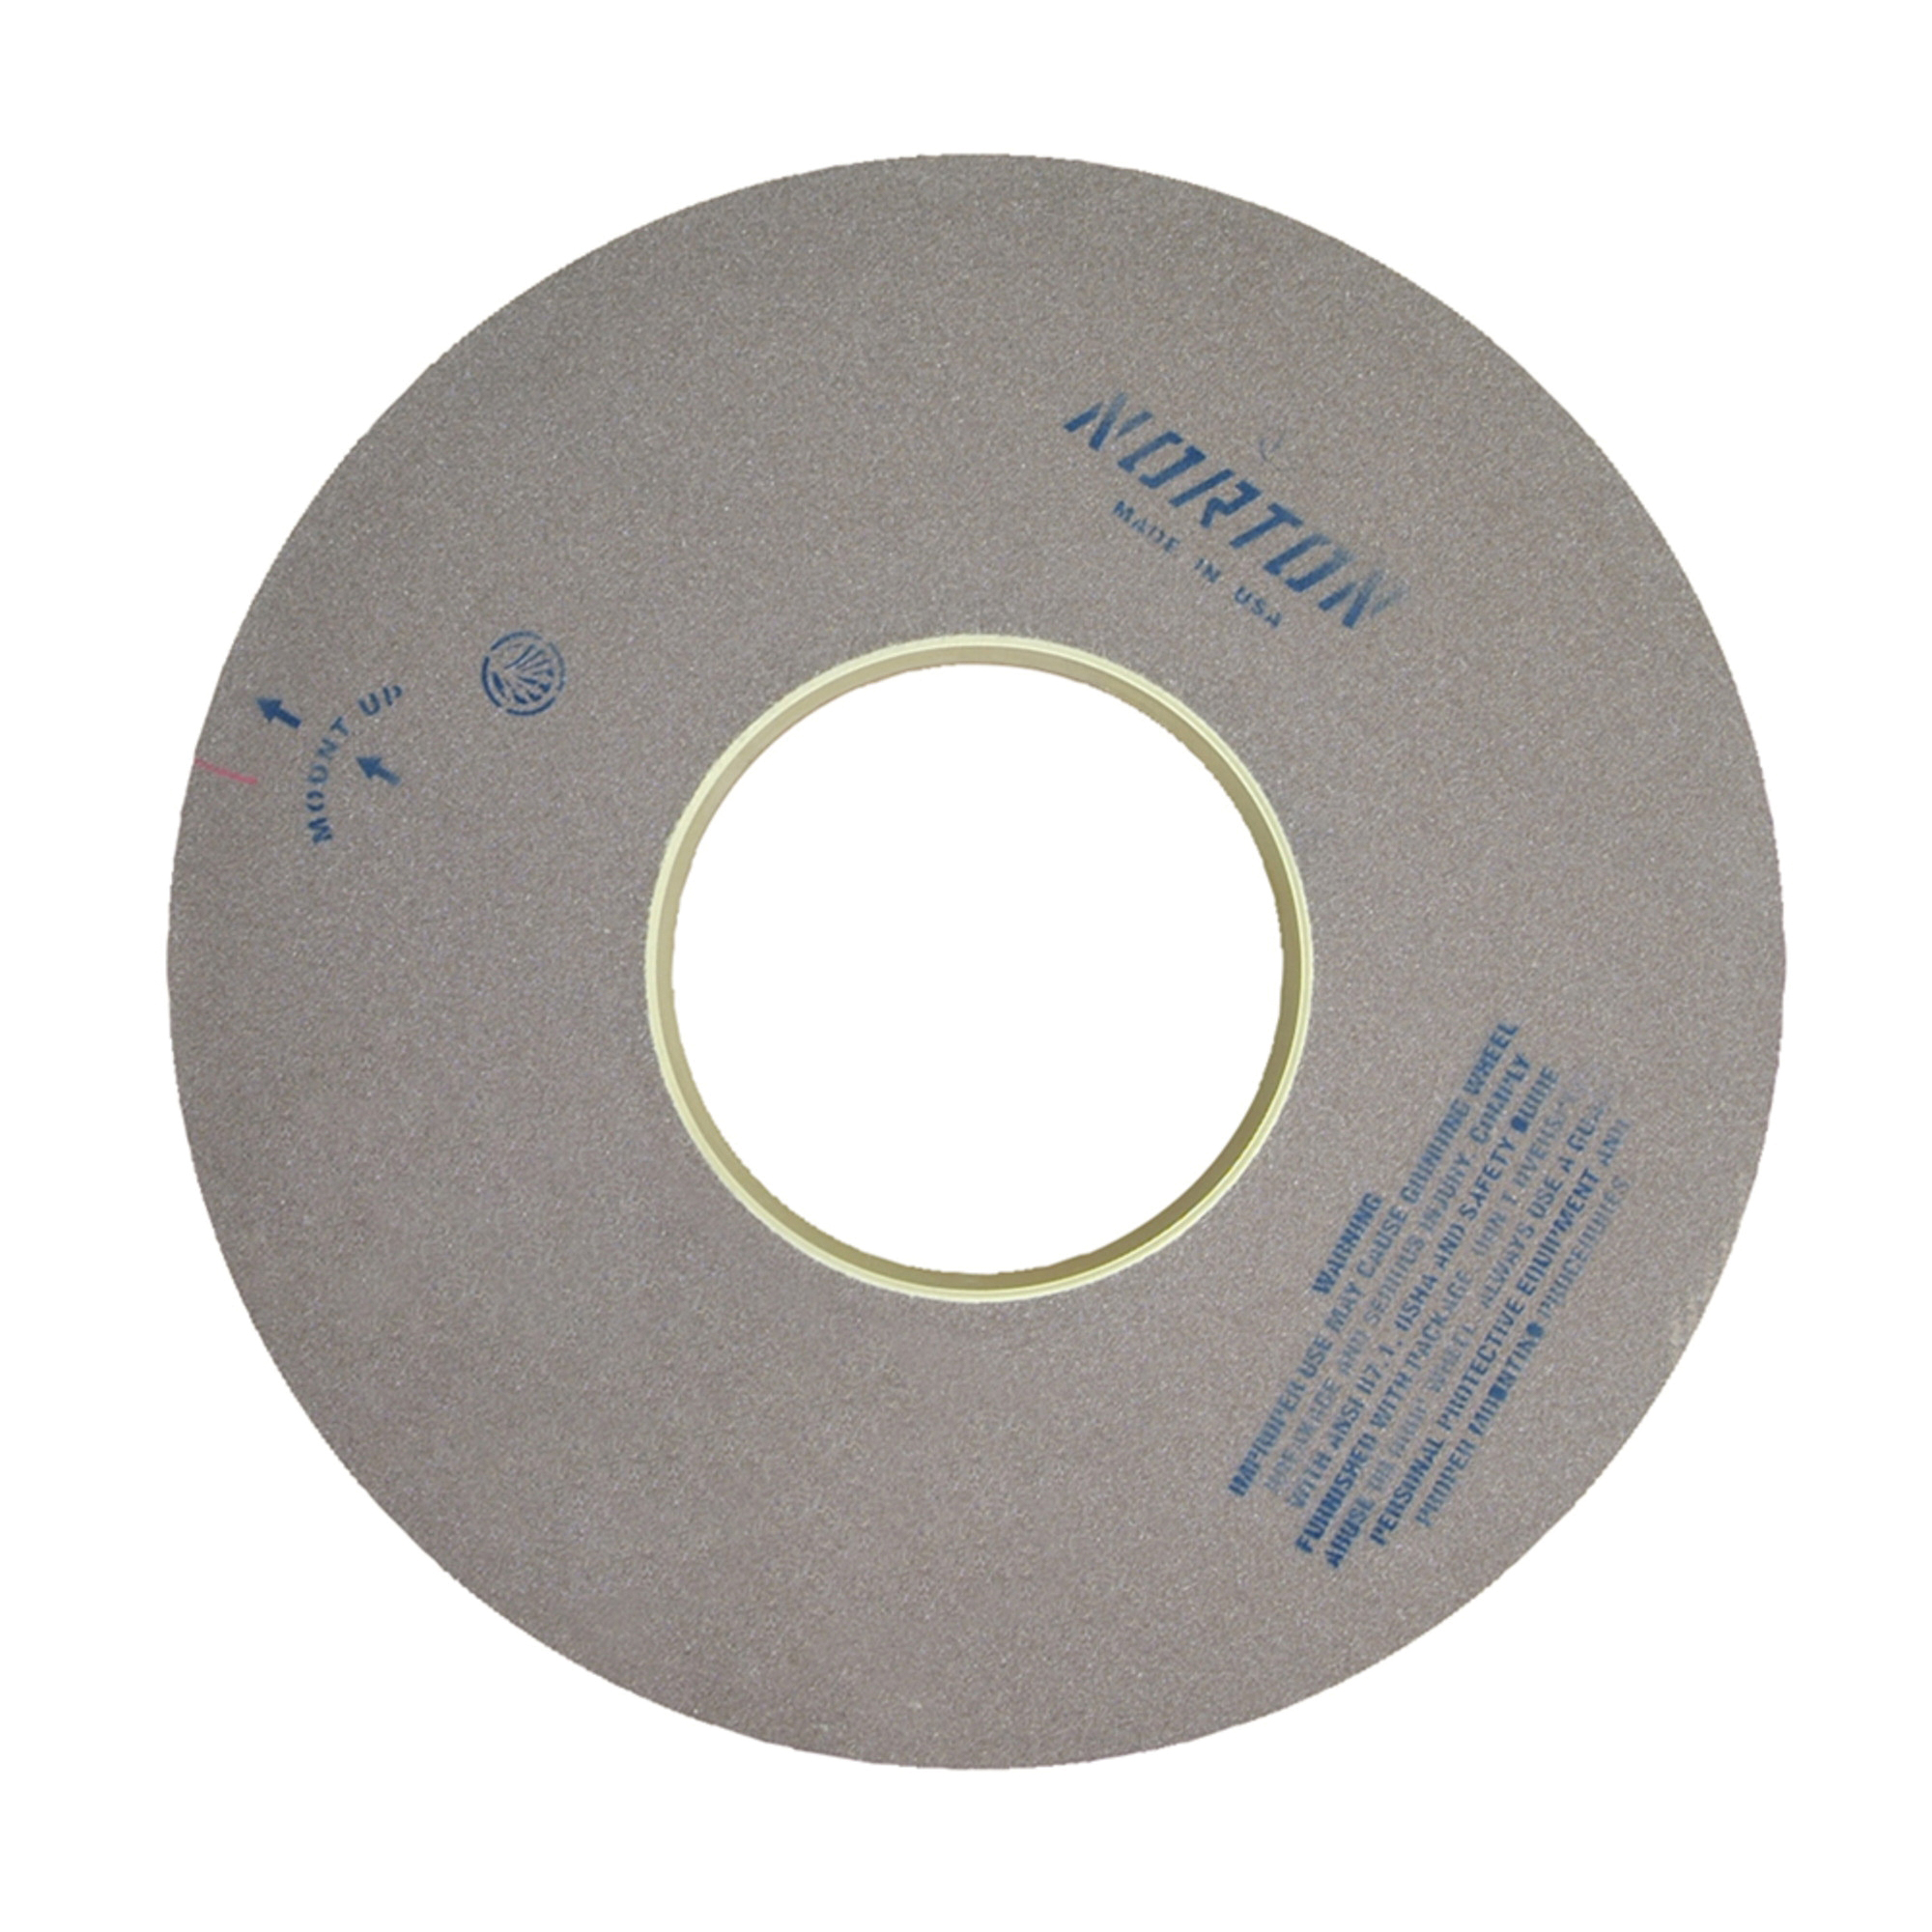 Norton® 69083166711 64A Surface and Cylindrical Grinding Wheel, 24 in Dia x 2 in THK, 12 in Center Hole, 80 Grit, Aluminum Oxide Abrasive